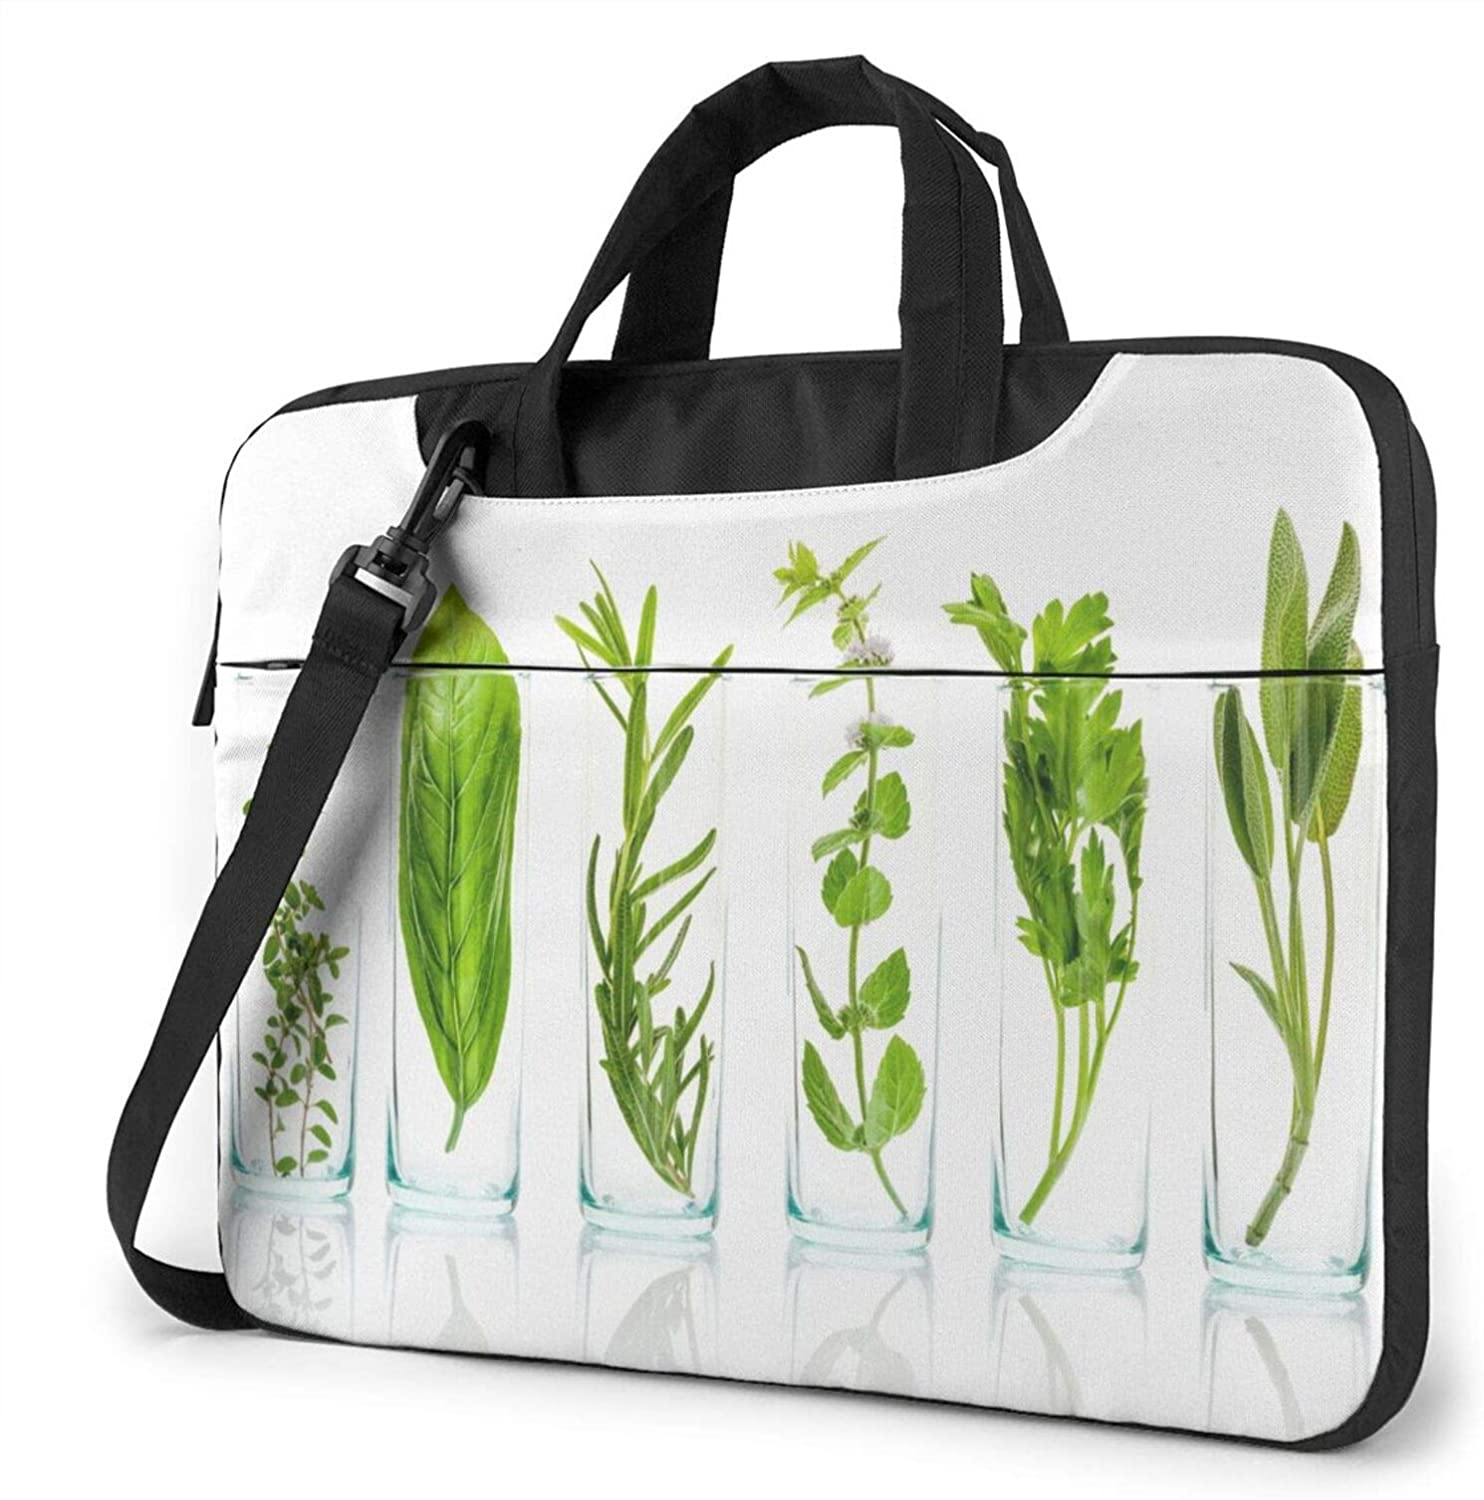 Marvellous Fresh Herbs Laptop Shoulder Messenger Bag,Laptop Shoulder Bag Carrying Case with Handle Laptop Case Laptop Briefcase 14 Inch Fits 13 inch Netbook/Laptop